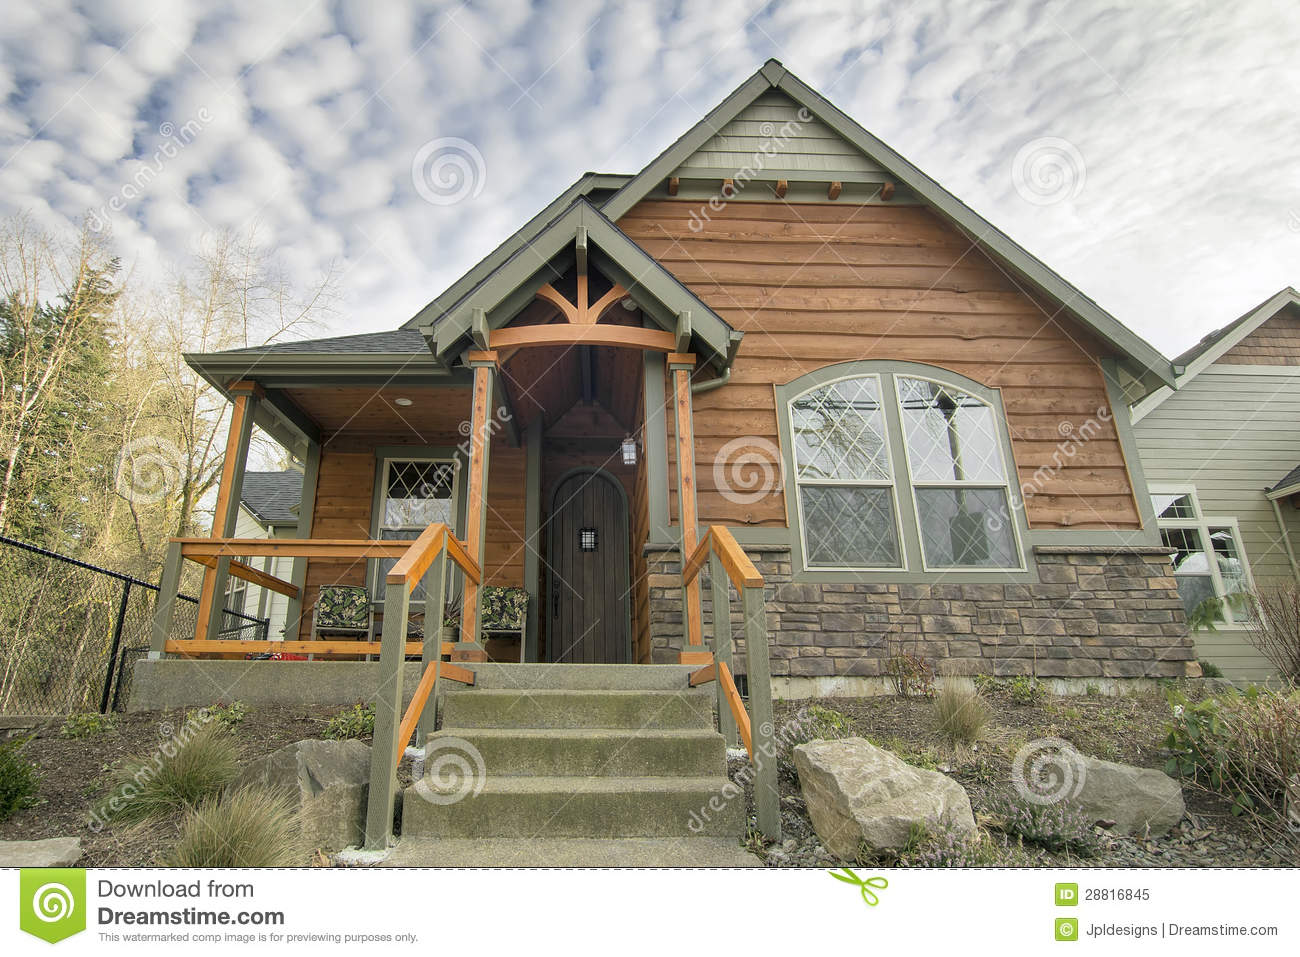 Covered front porch craftsman style home royalty free stock image - Royalty Free Stock Photo Bungalow Covered Front House Landscaping Porch